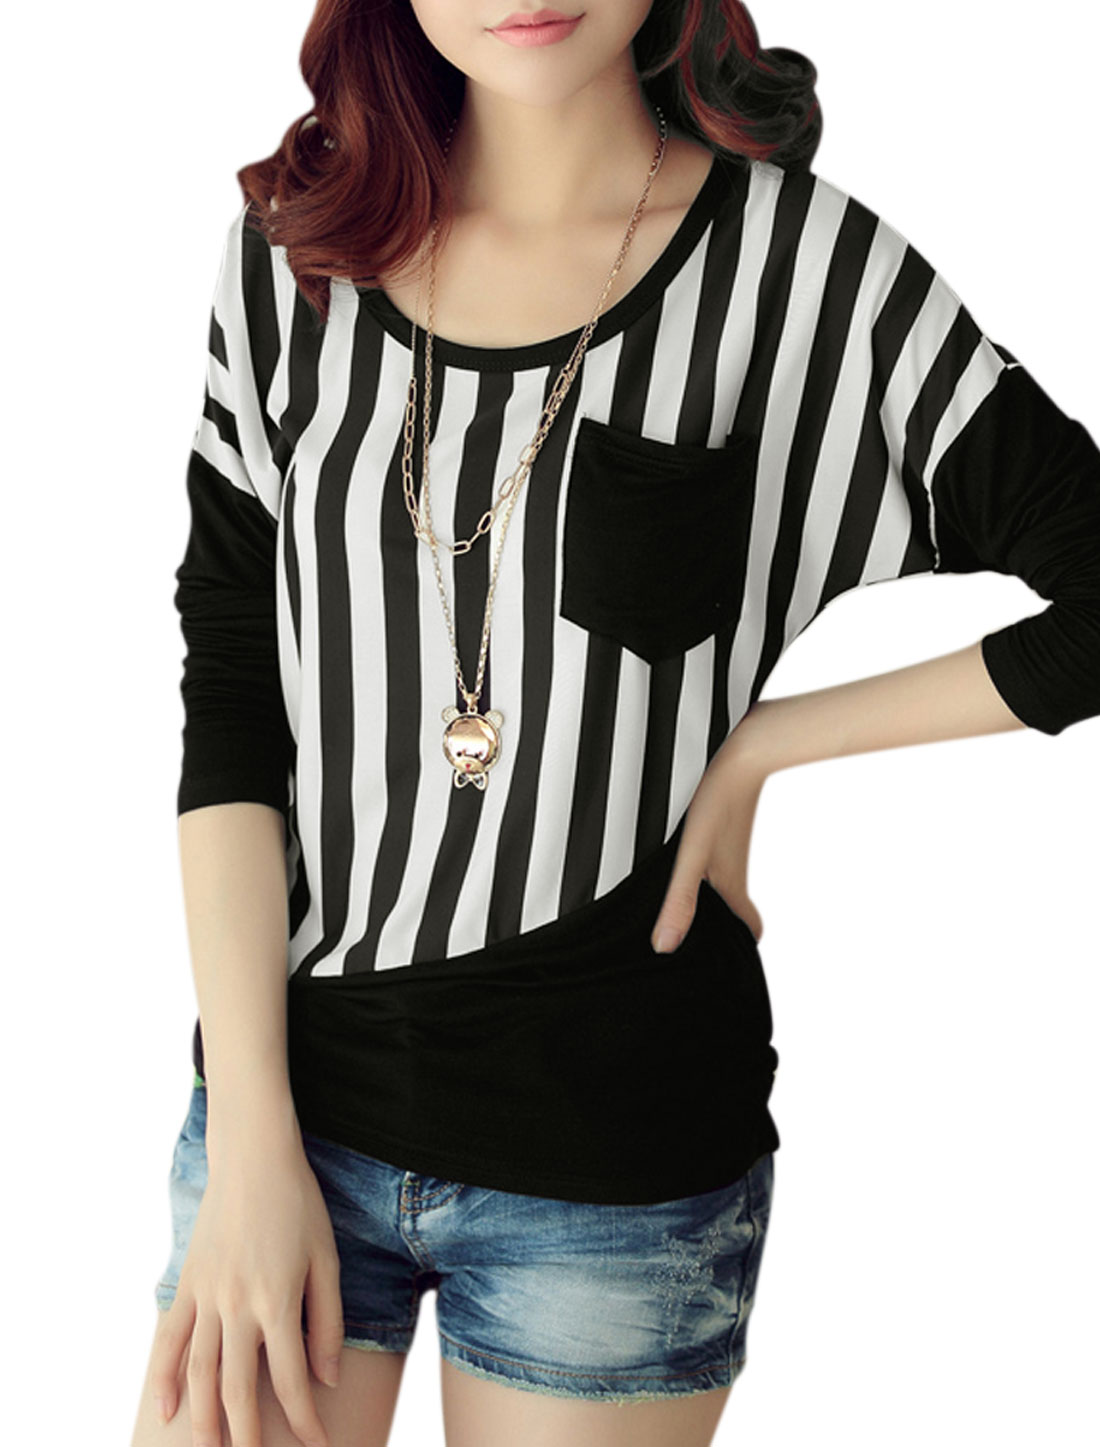 Lady Round Neck Long Batwing Sleeve Stripes Casual T-Shirt Black White S